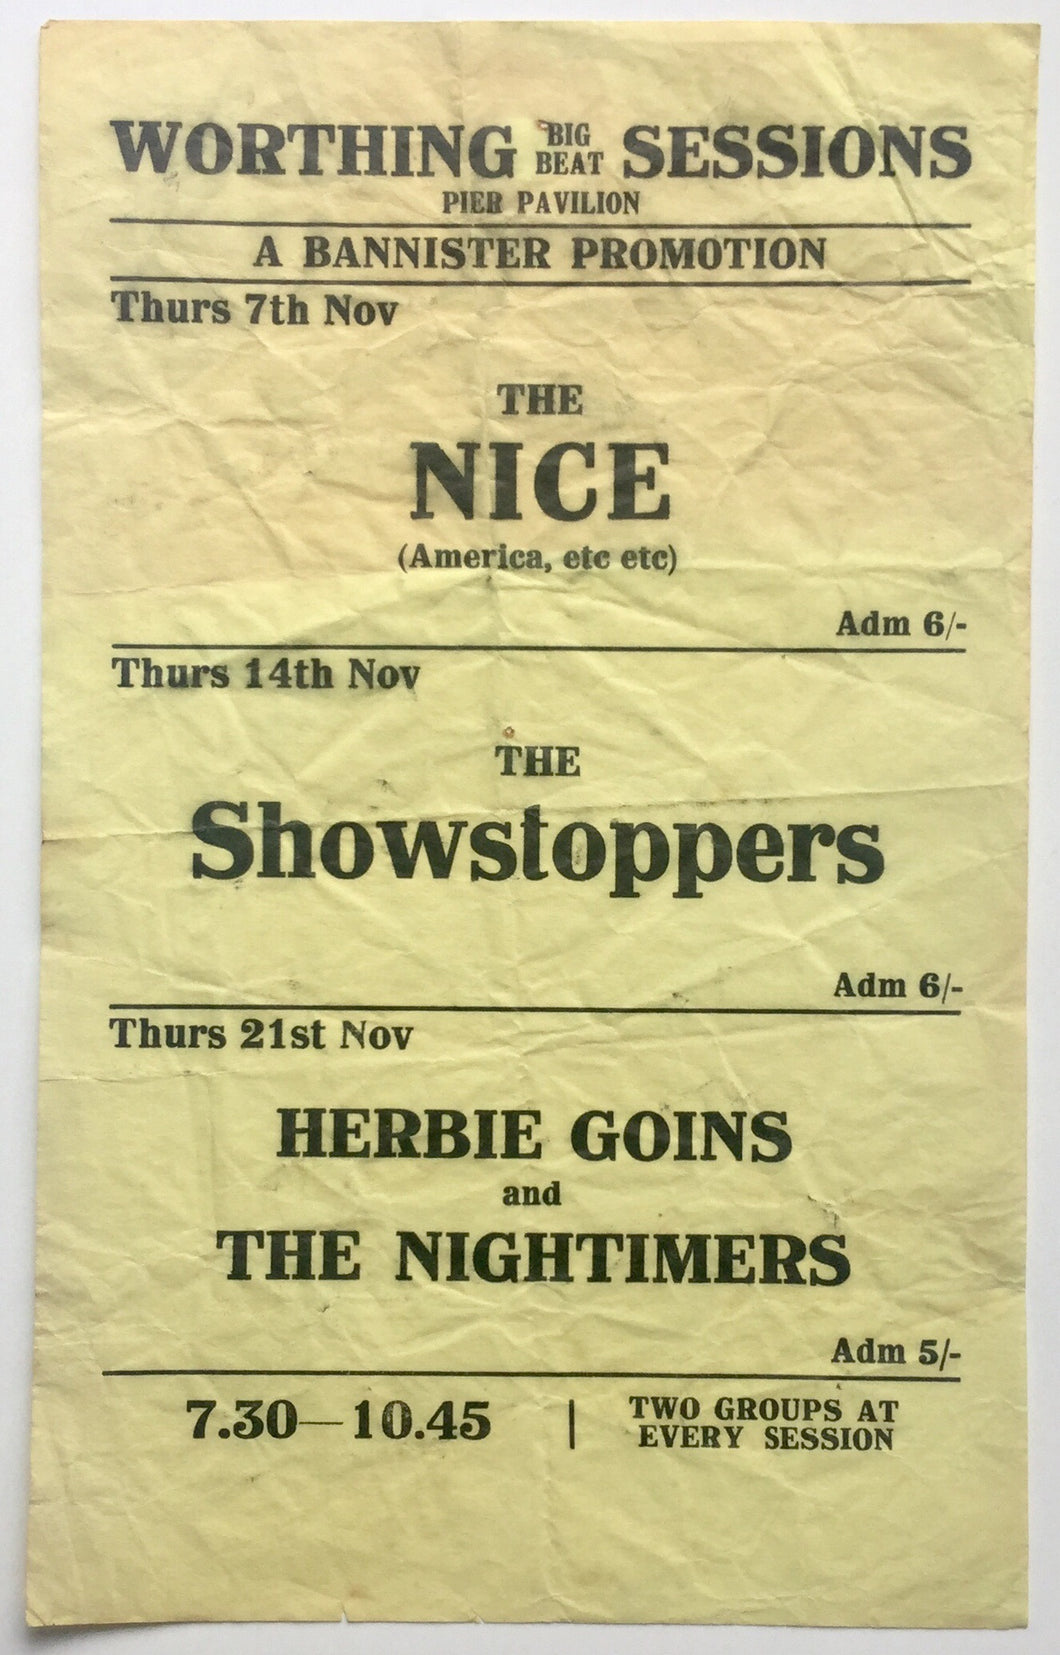 Nice Herbie Goins Showstoppers Original Concert Handbill Flyer Pier Pavilion Worthing 1968